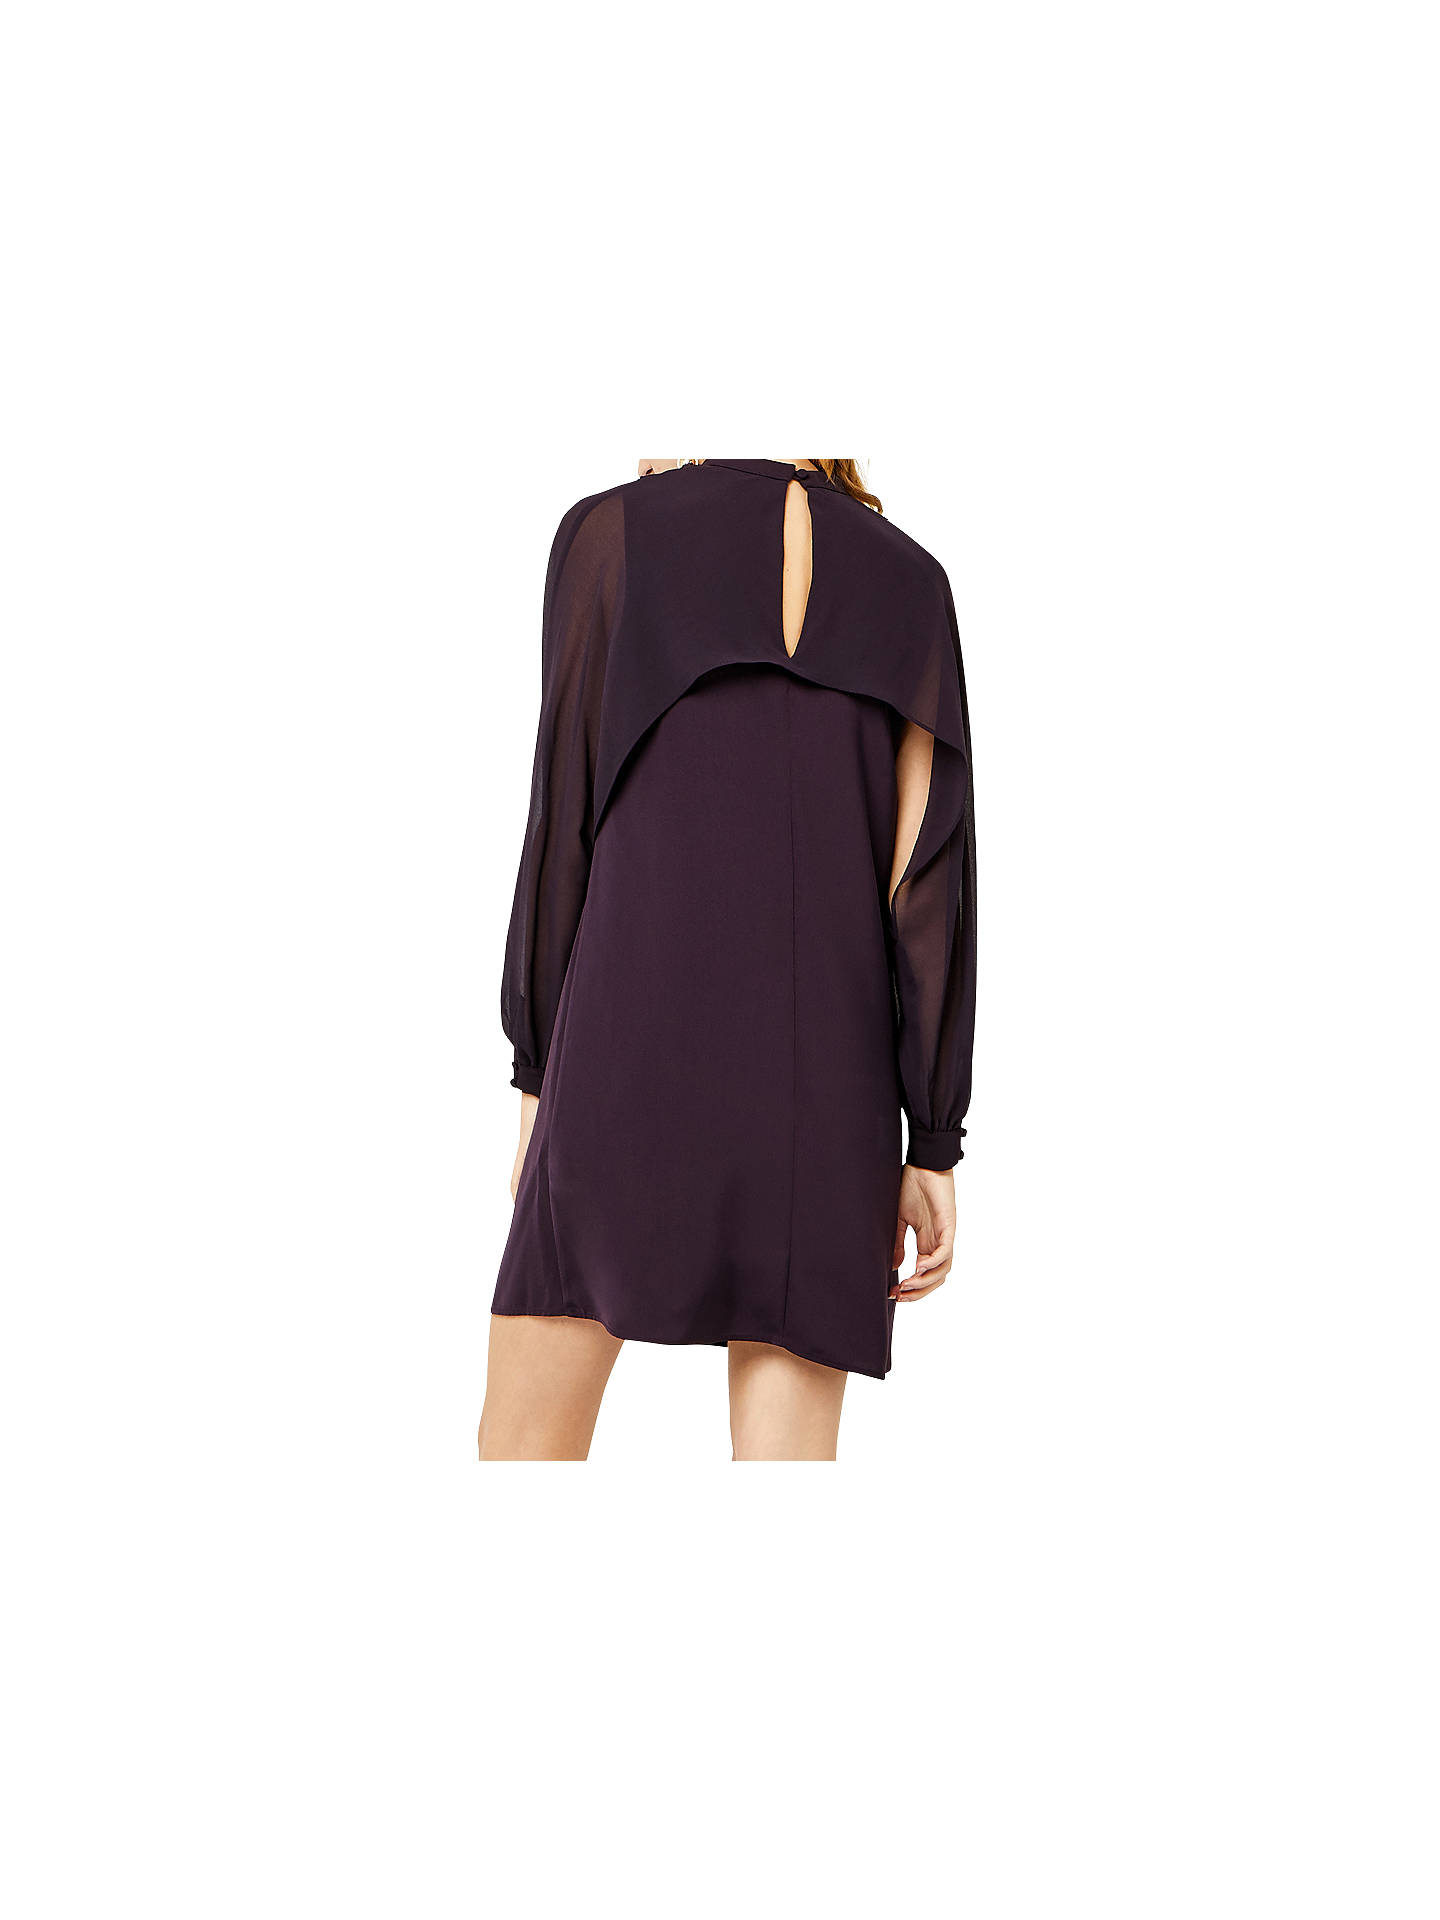 BuyWarehouse Layered Cape Dress, Dark Purple, 6 Online at johnlewis.com